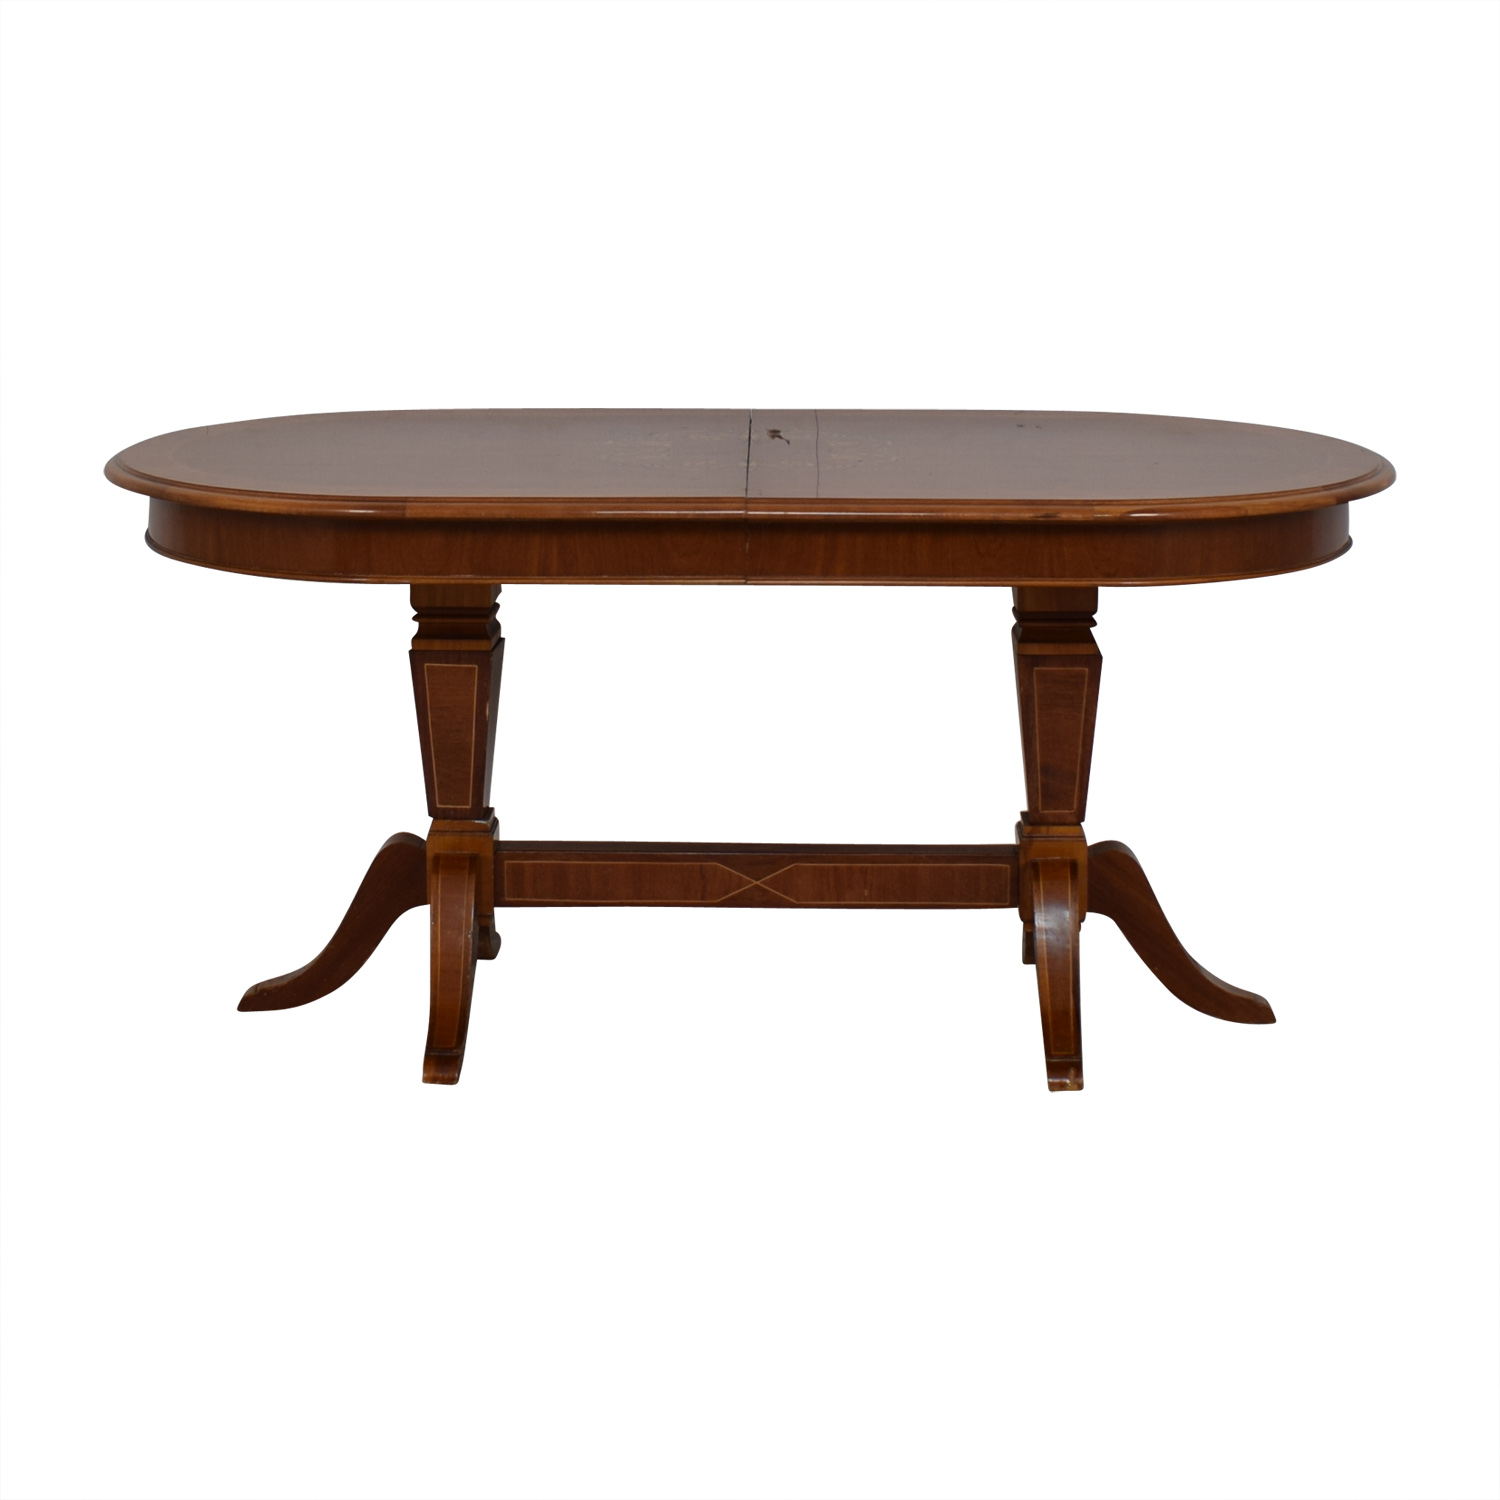 Sheraton Sheraton Extendable Dining Table